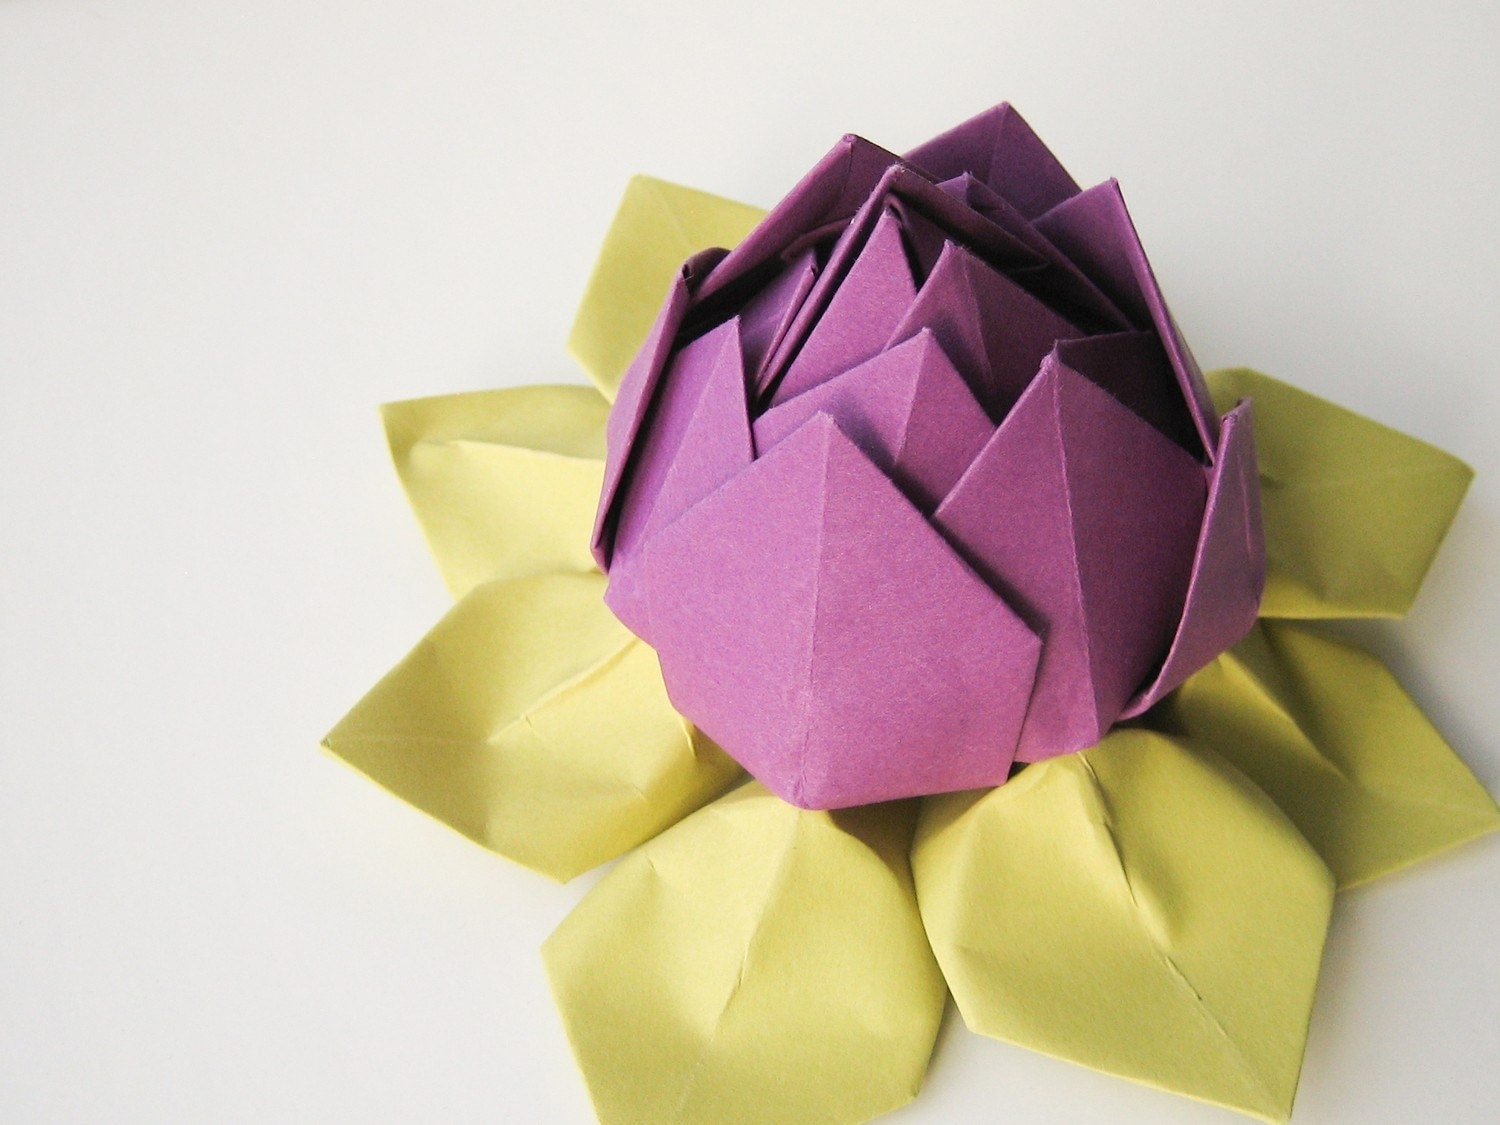 LOTUS FLOWER ORIGAMI EMBROIDERY & ORIGAMI